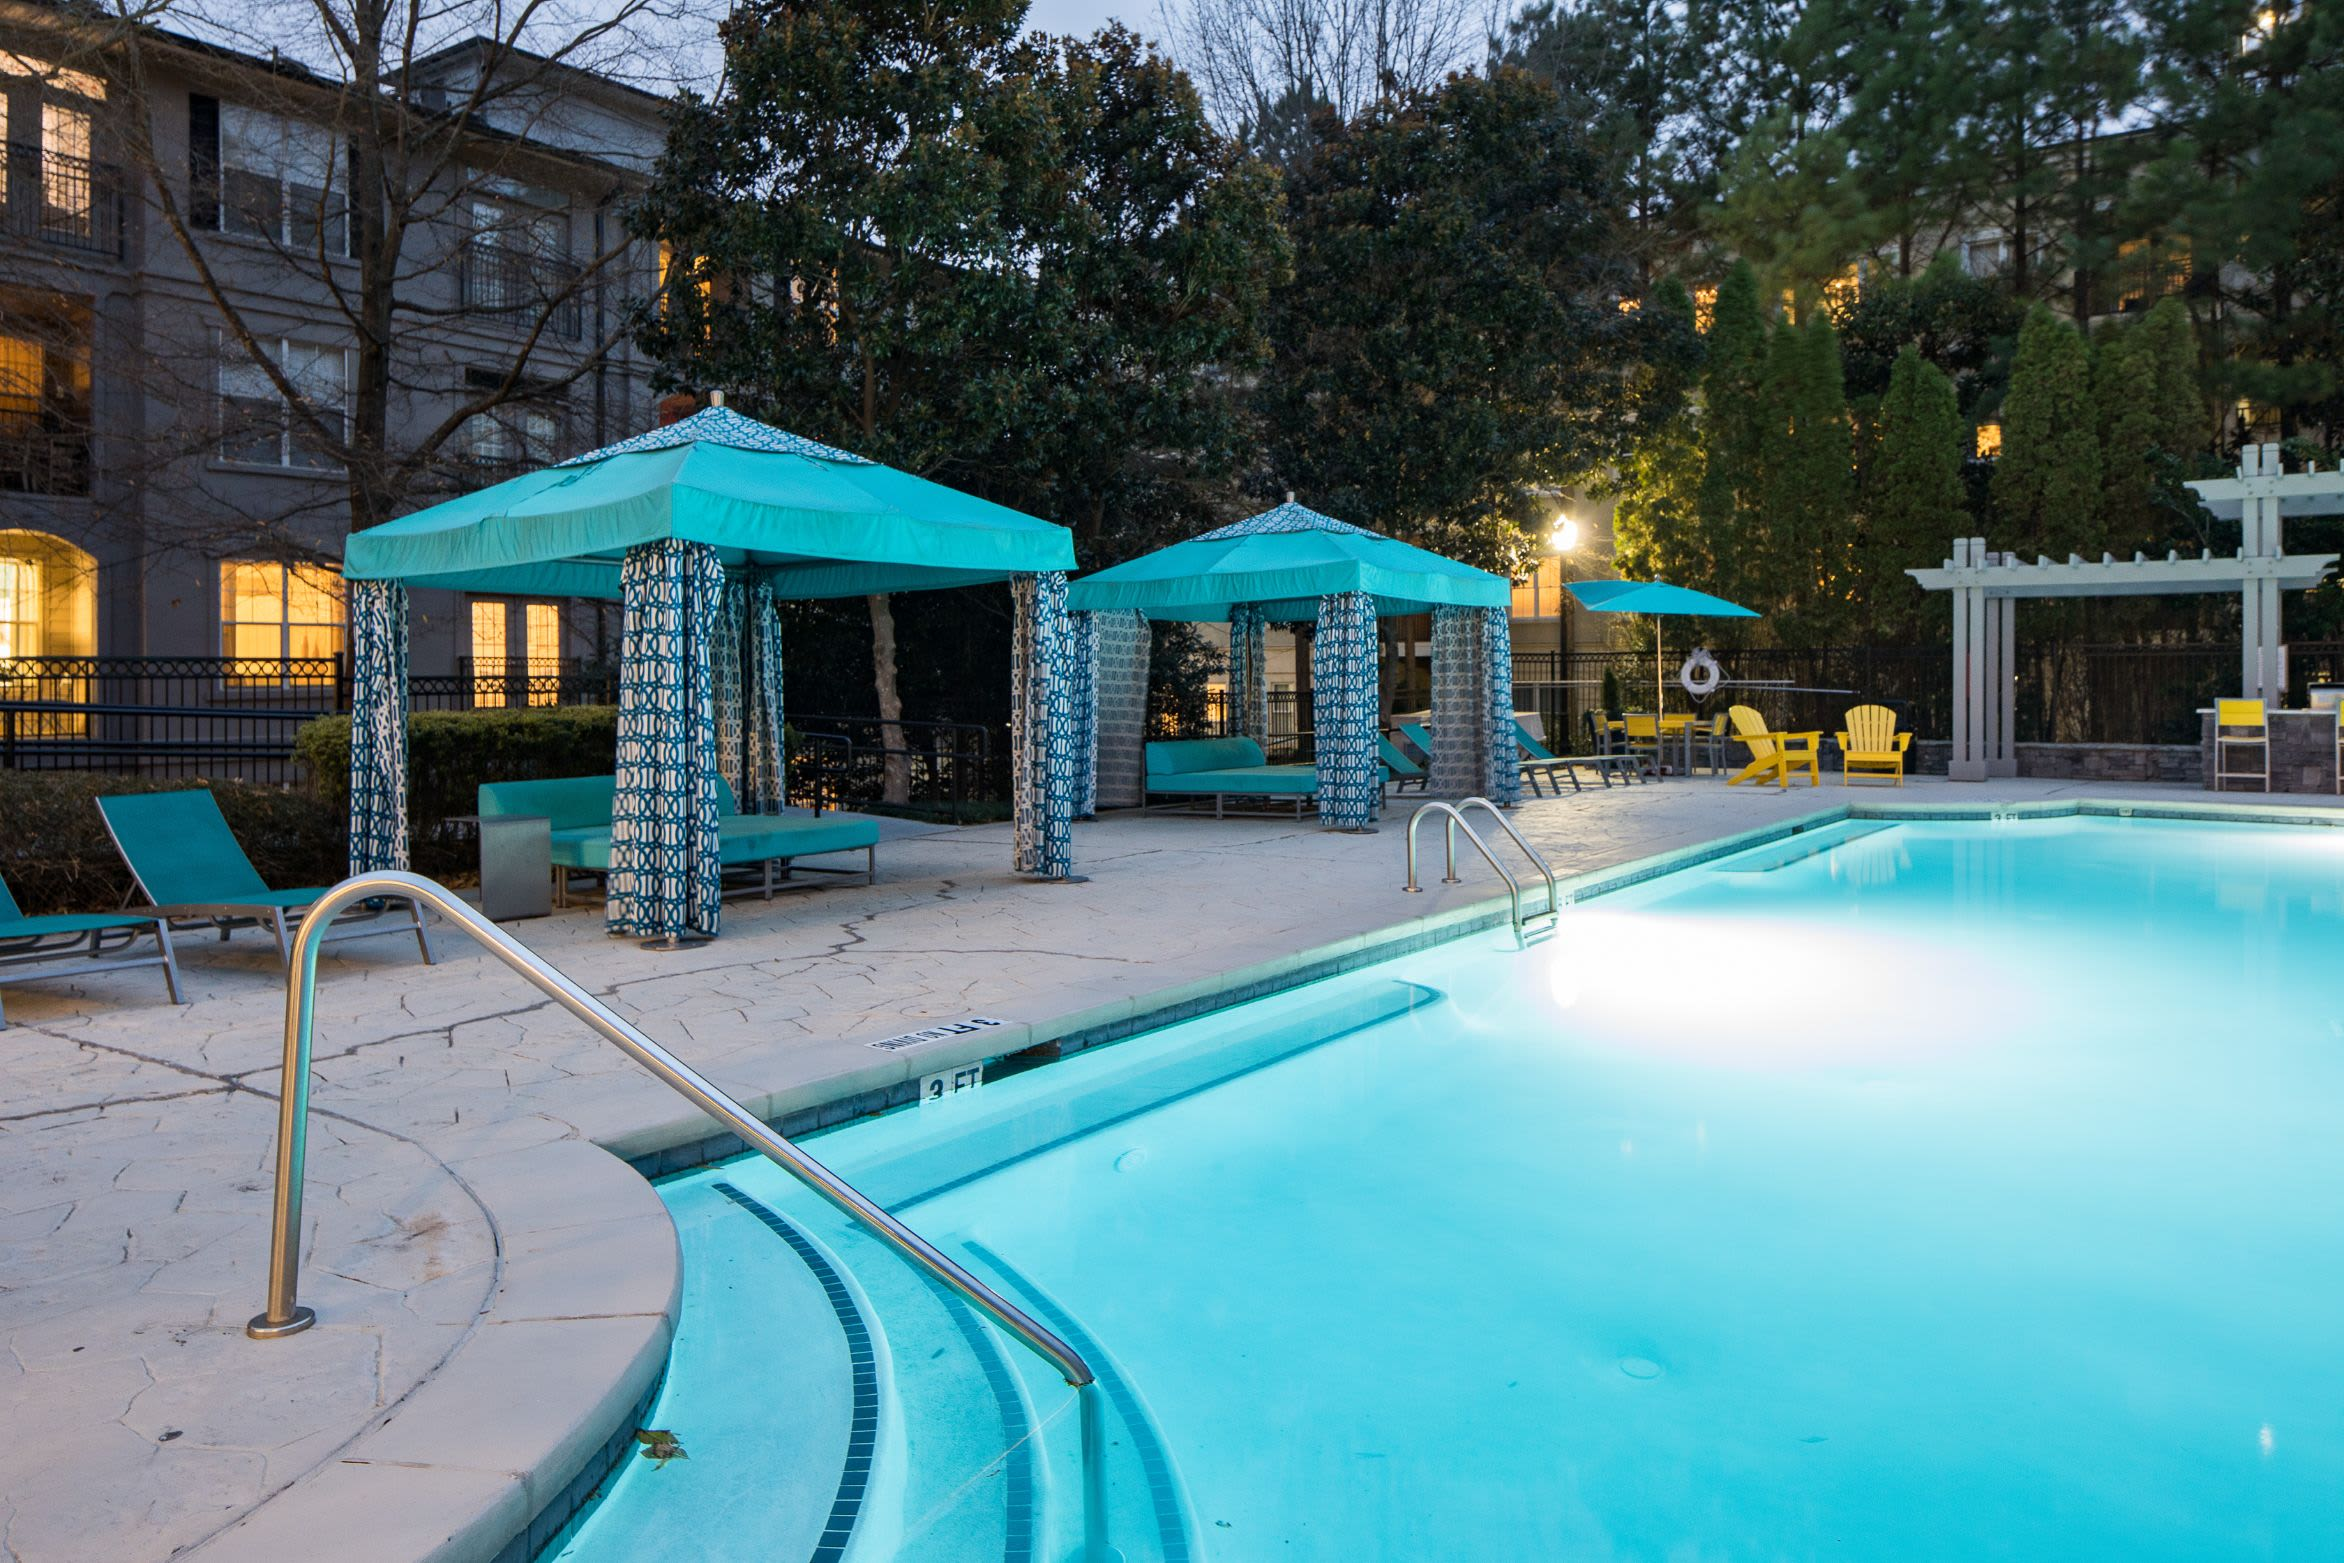 Swimming pool with covered lounge chairs on deck at Marq Perimeter in Atlanta, Georgia